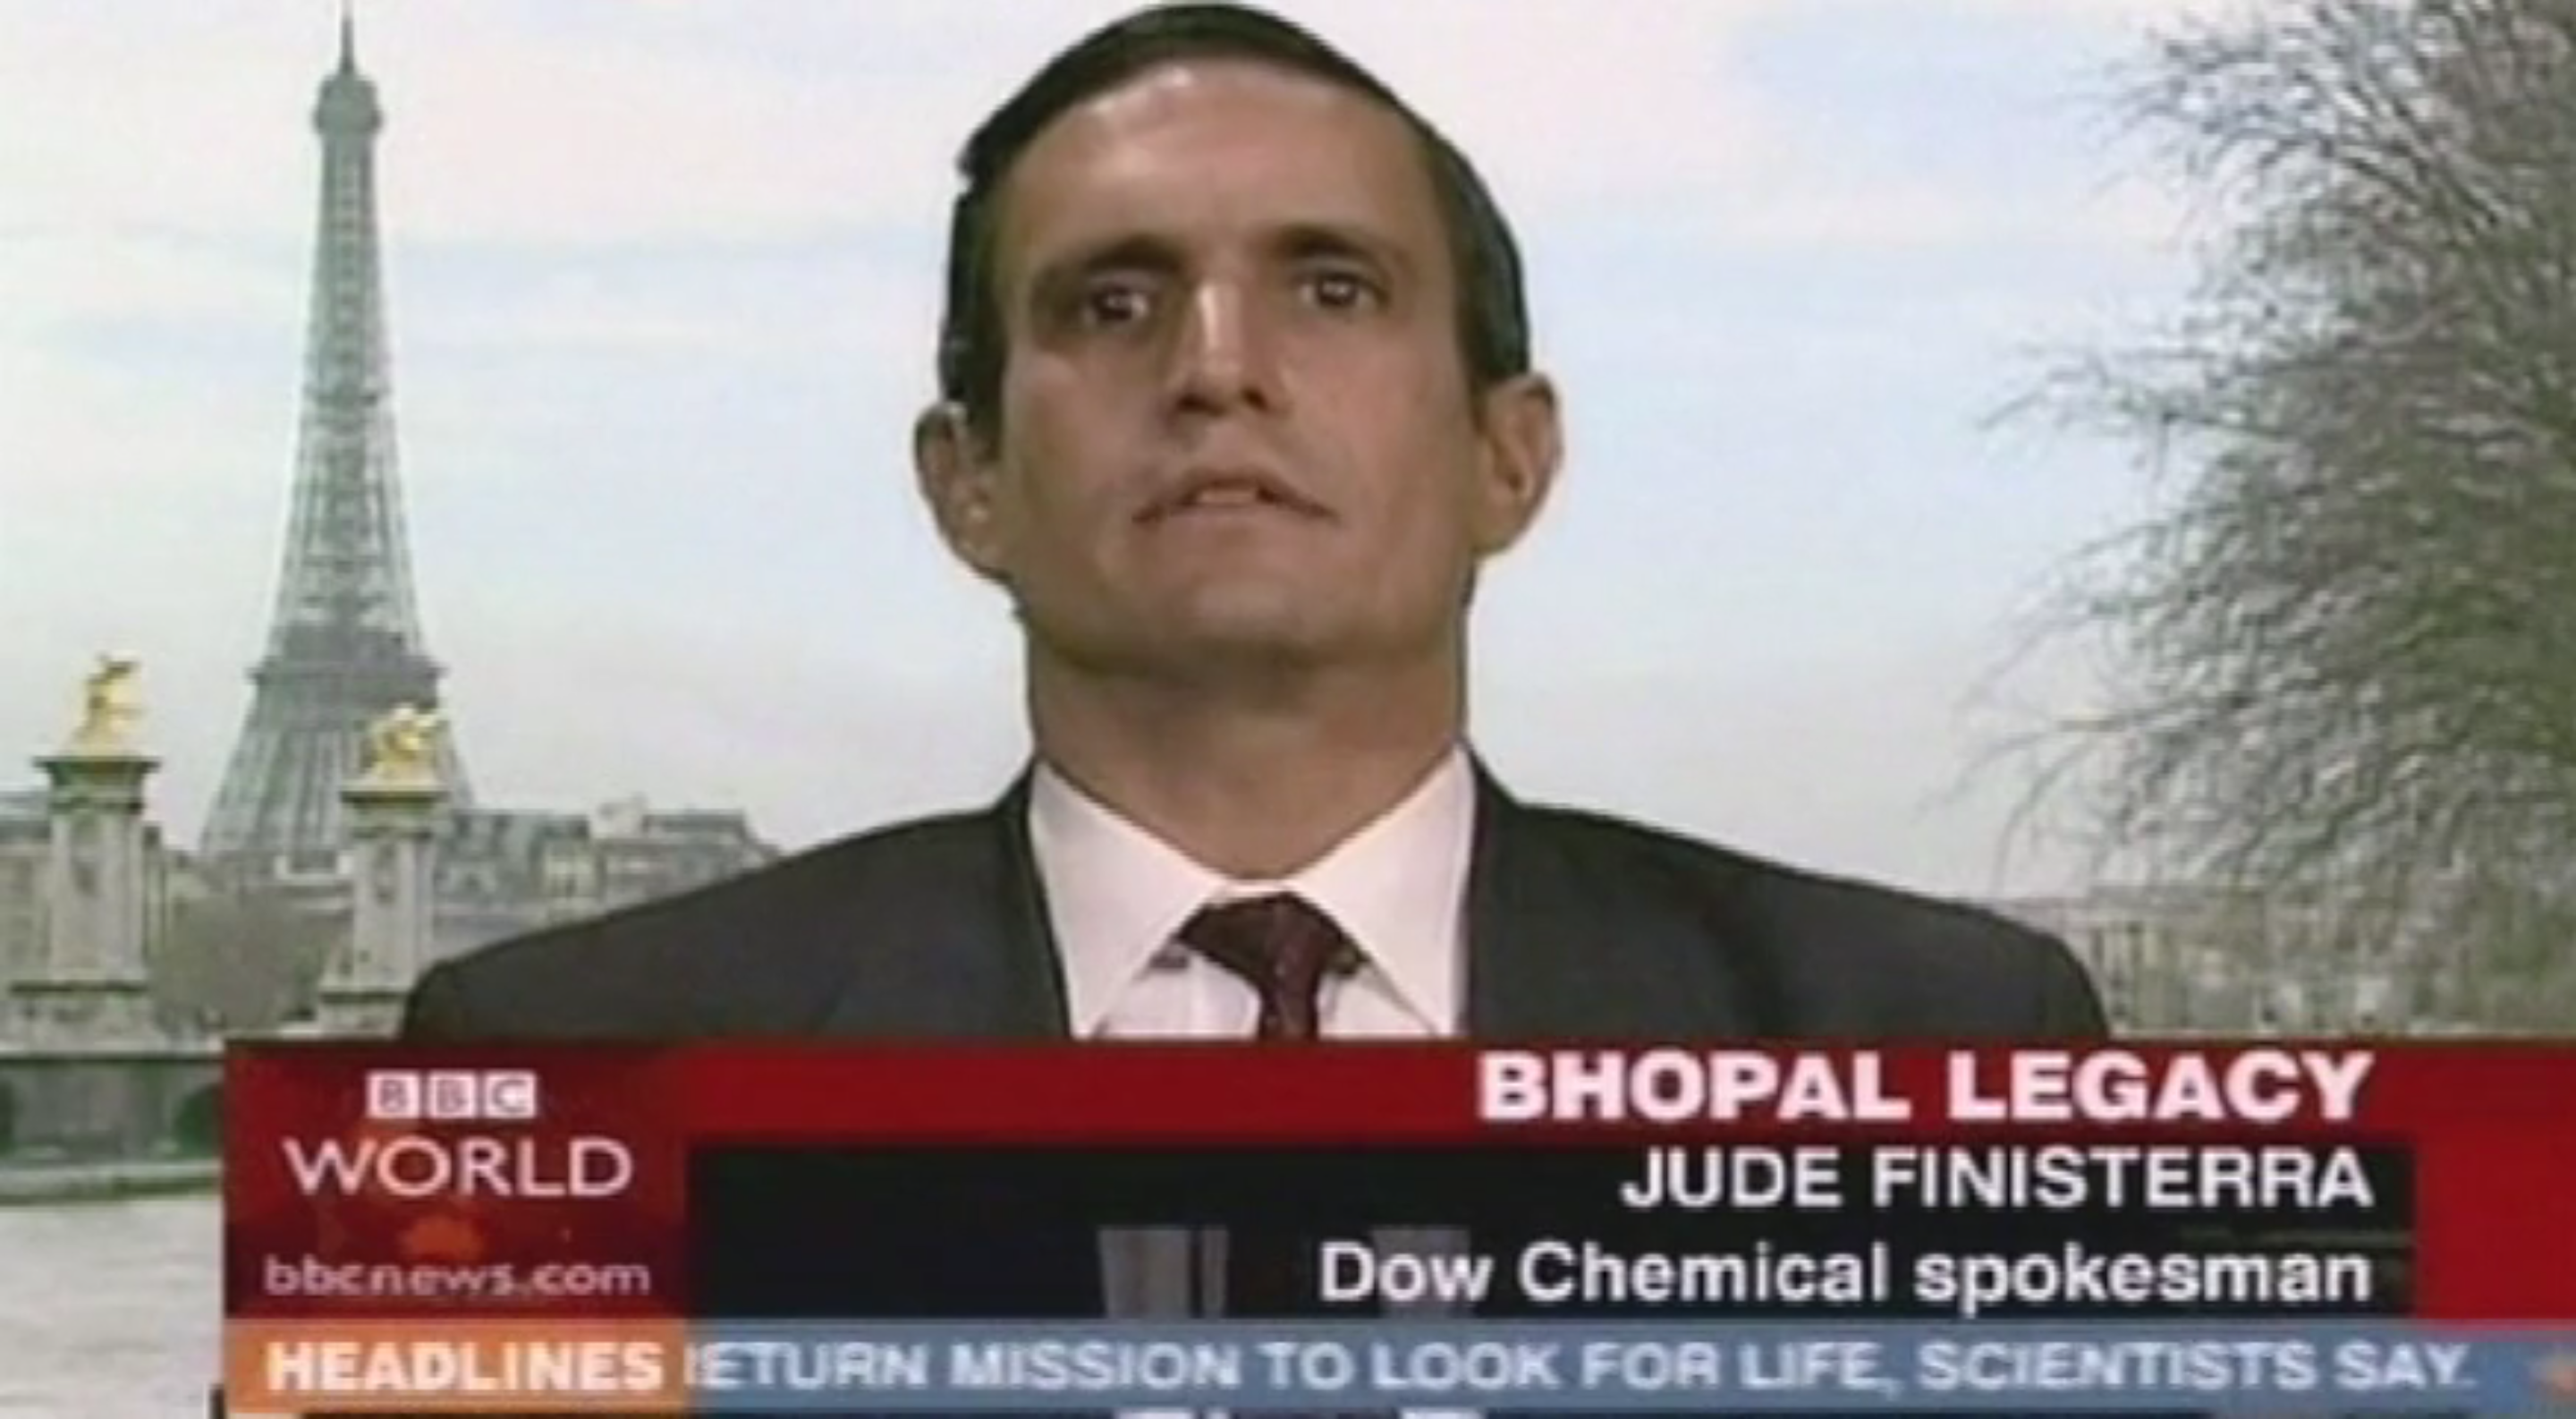 Jacques Servin poses as a DOW Chemical spokesman and accepts responsibility for the Bhopal disaster on BBC World News. The broadcast reached 400m people.